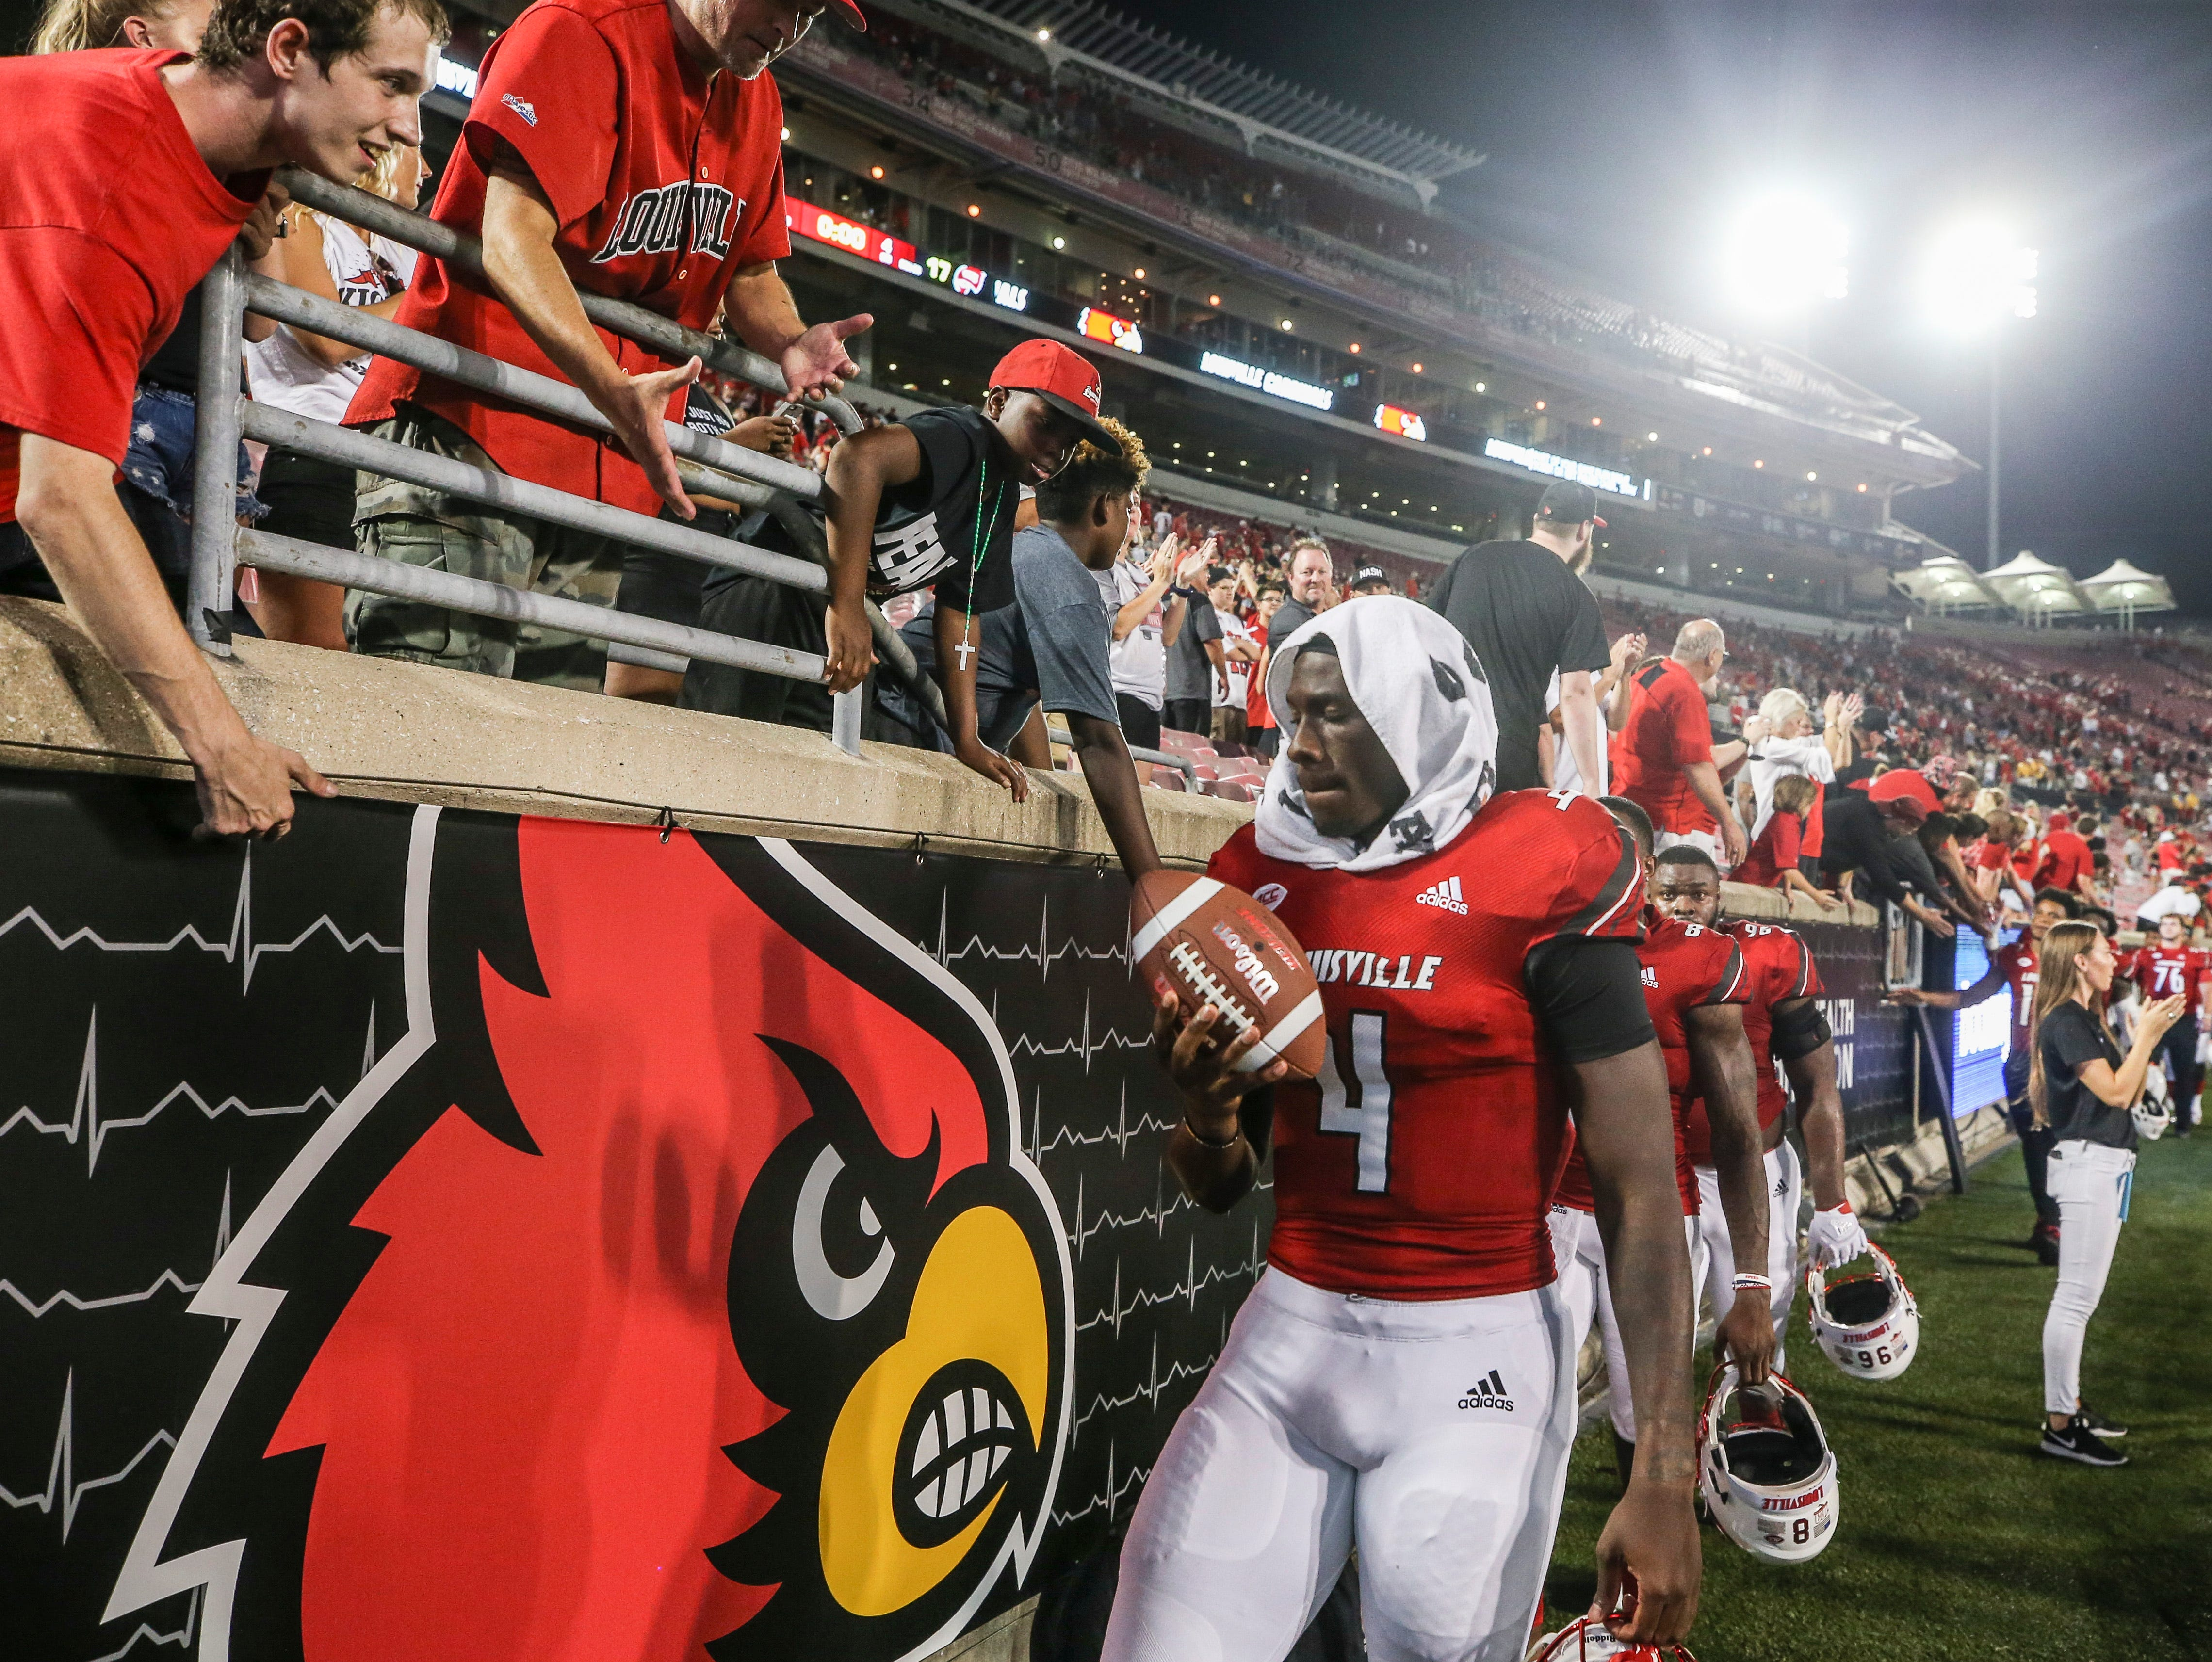 Louisville's Jawon Pass only had three attempts with one interception and a sack in the Western Kentucky game at Cardinal Stadium Saturday, Sept. 15, 2018.